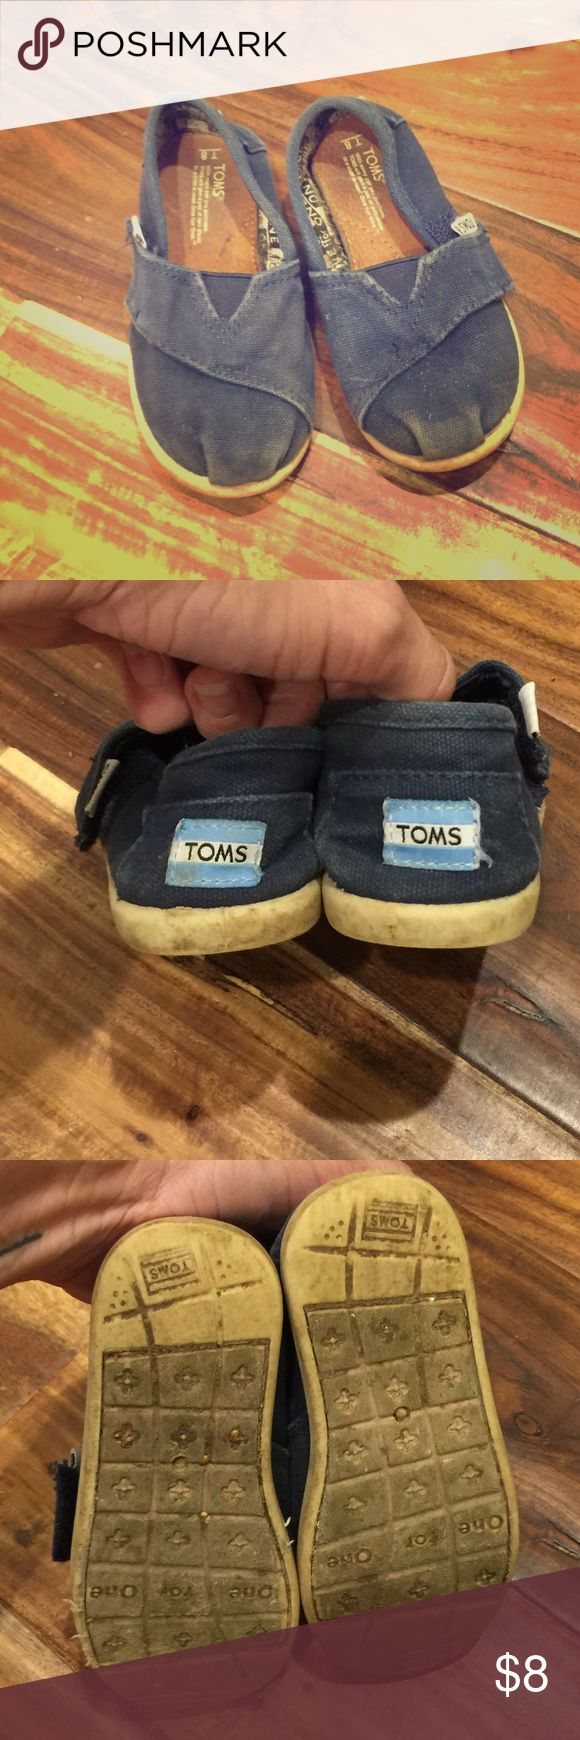 Kids Navy Toms canvas shoes Kids Navy Toms canvas shoes. GUC, size 8. Navy canvas, cream sole. TOMS Shoes Sneakers